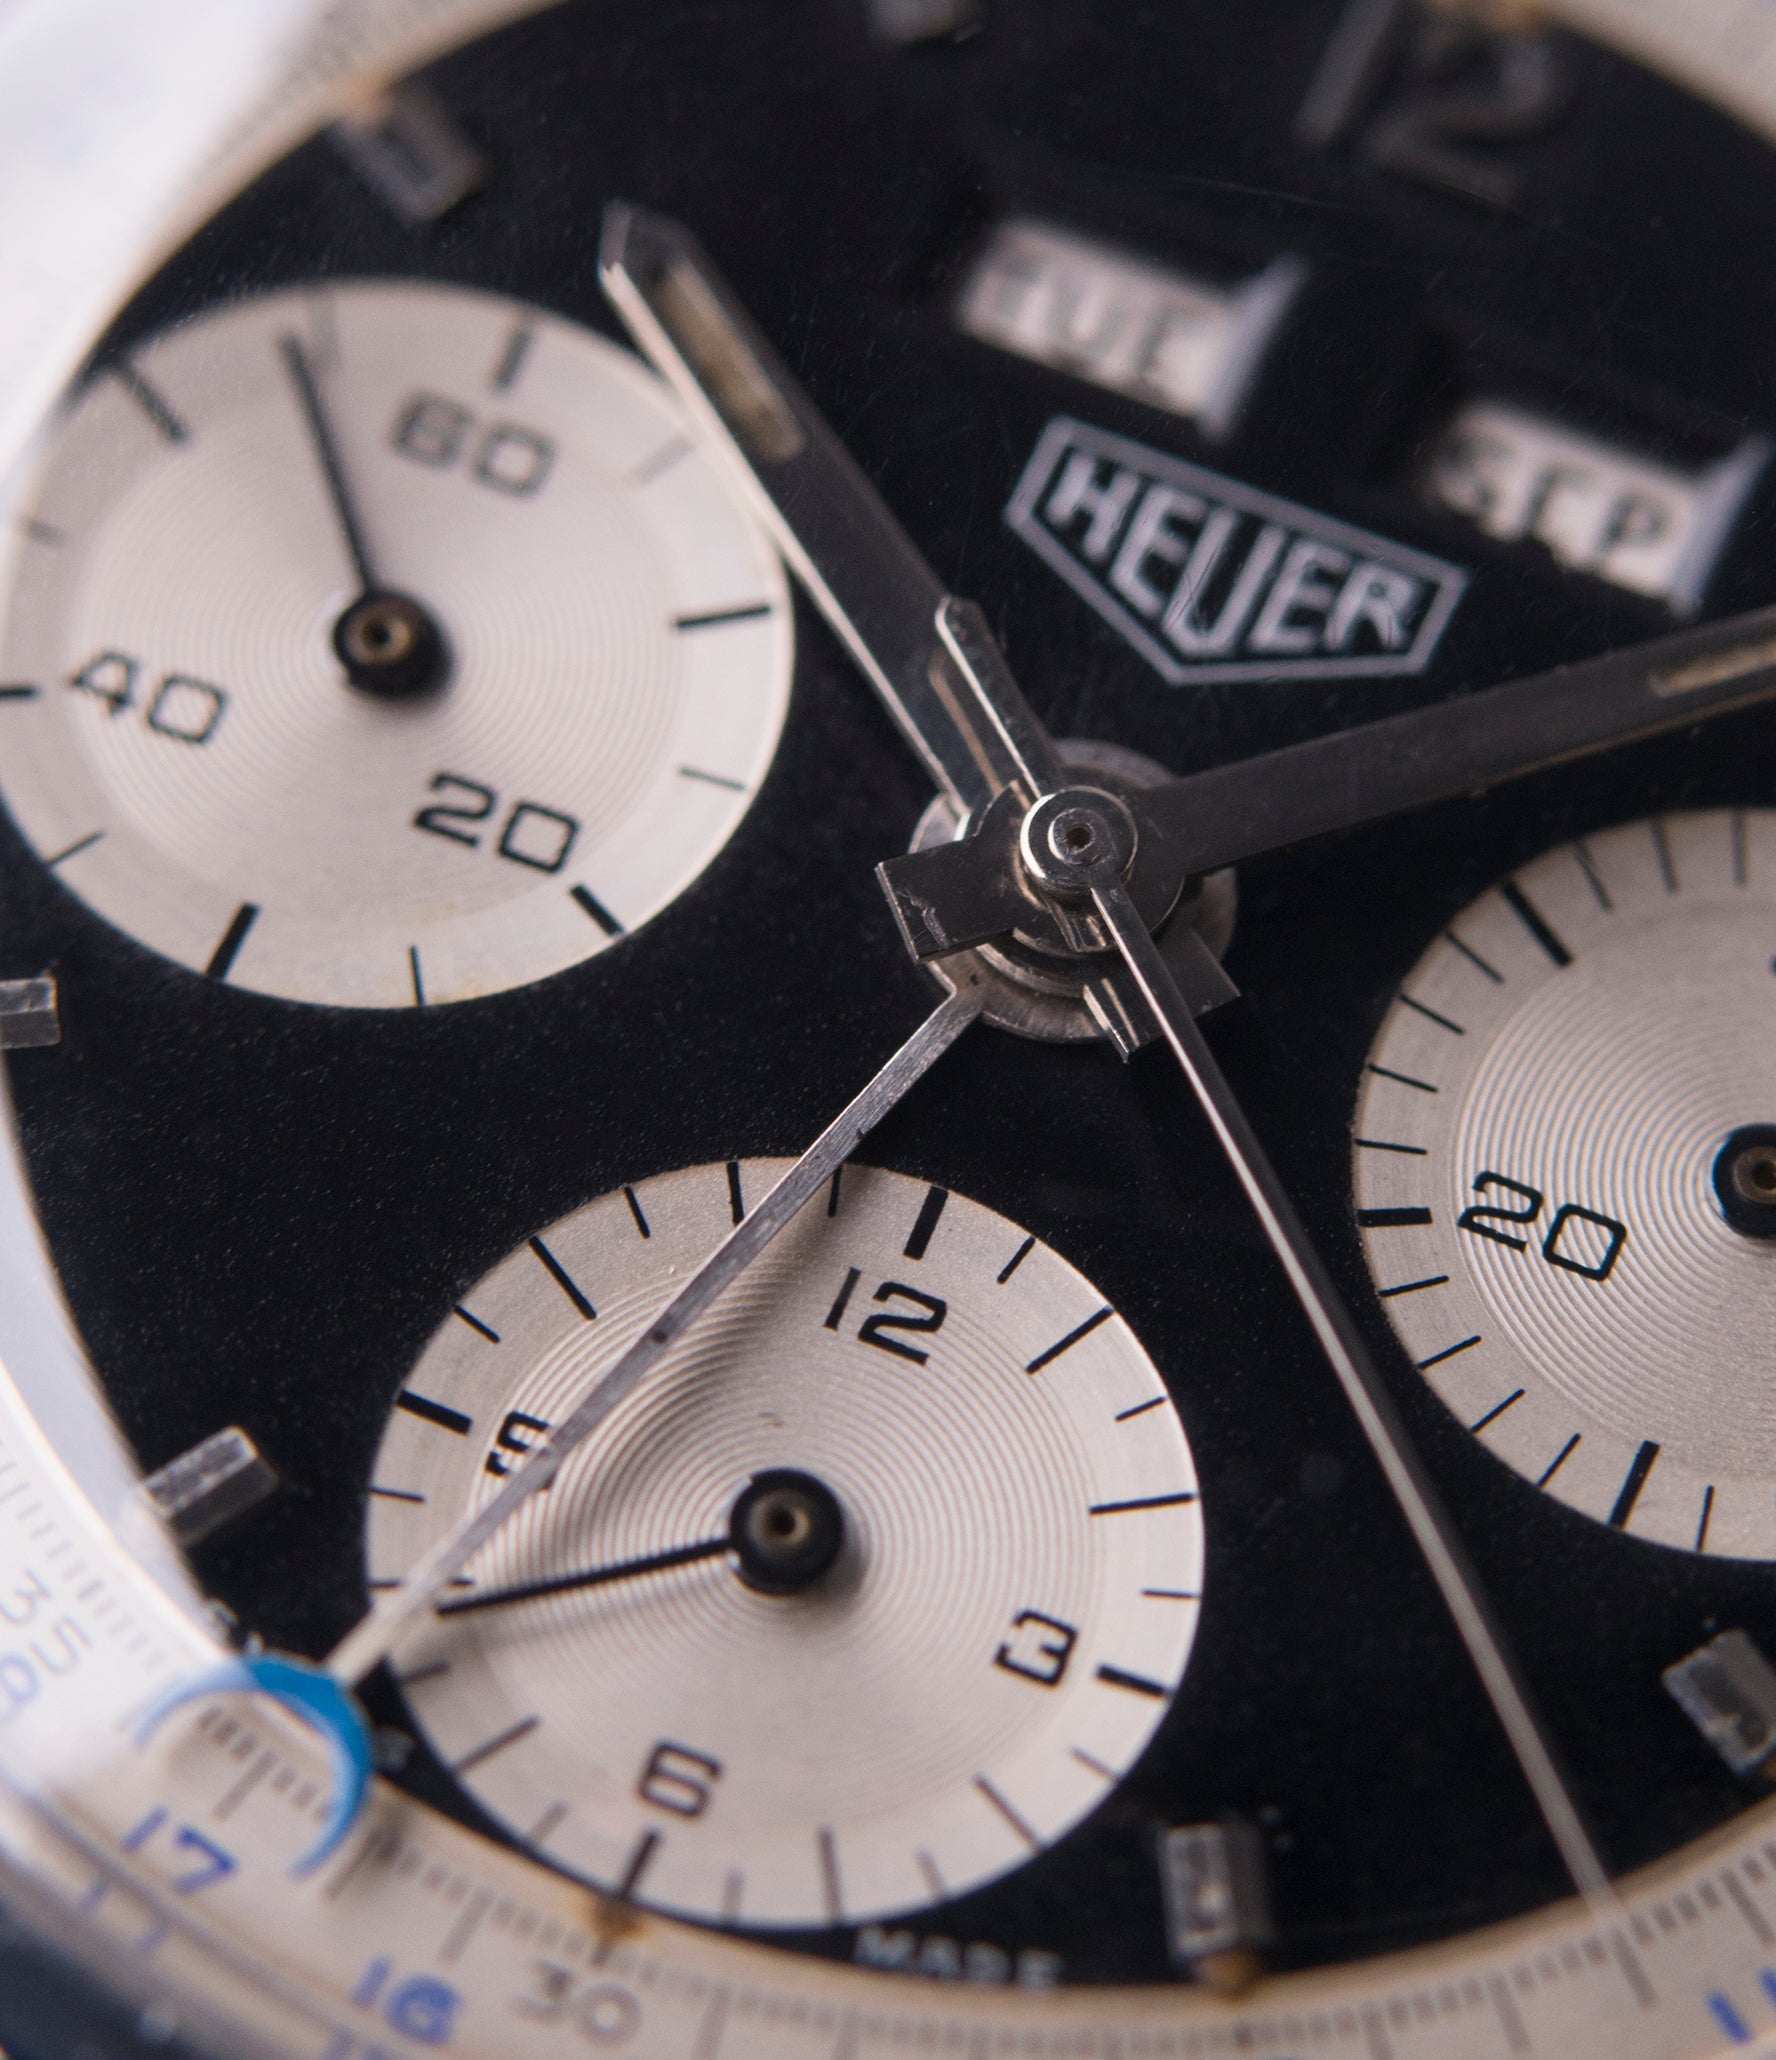 Heuer 2546NS Dato 12  panda dial most complicated triple calendar chronograph vintage Heuer Carrera watch for sale online at A Collected Man London UK specialist of rare watches